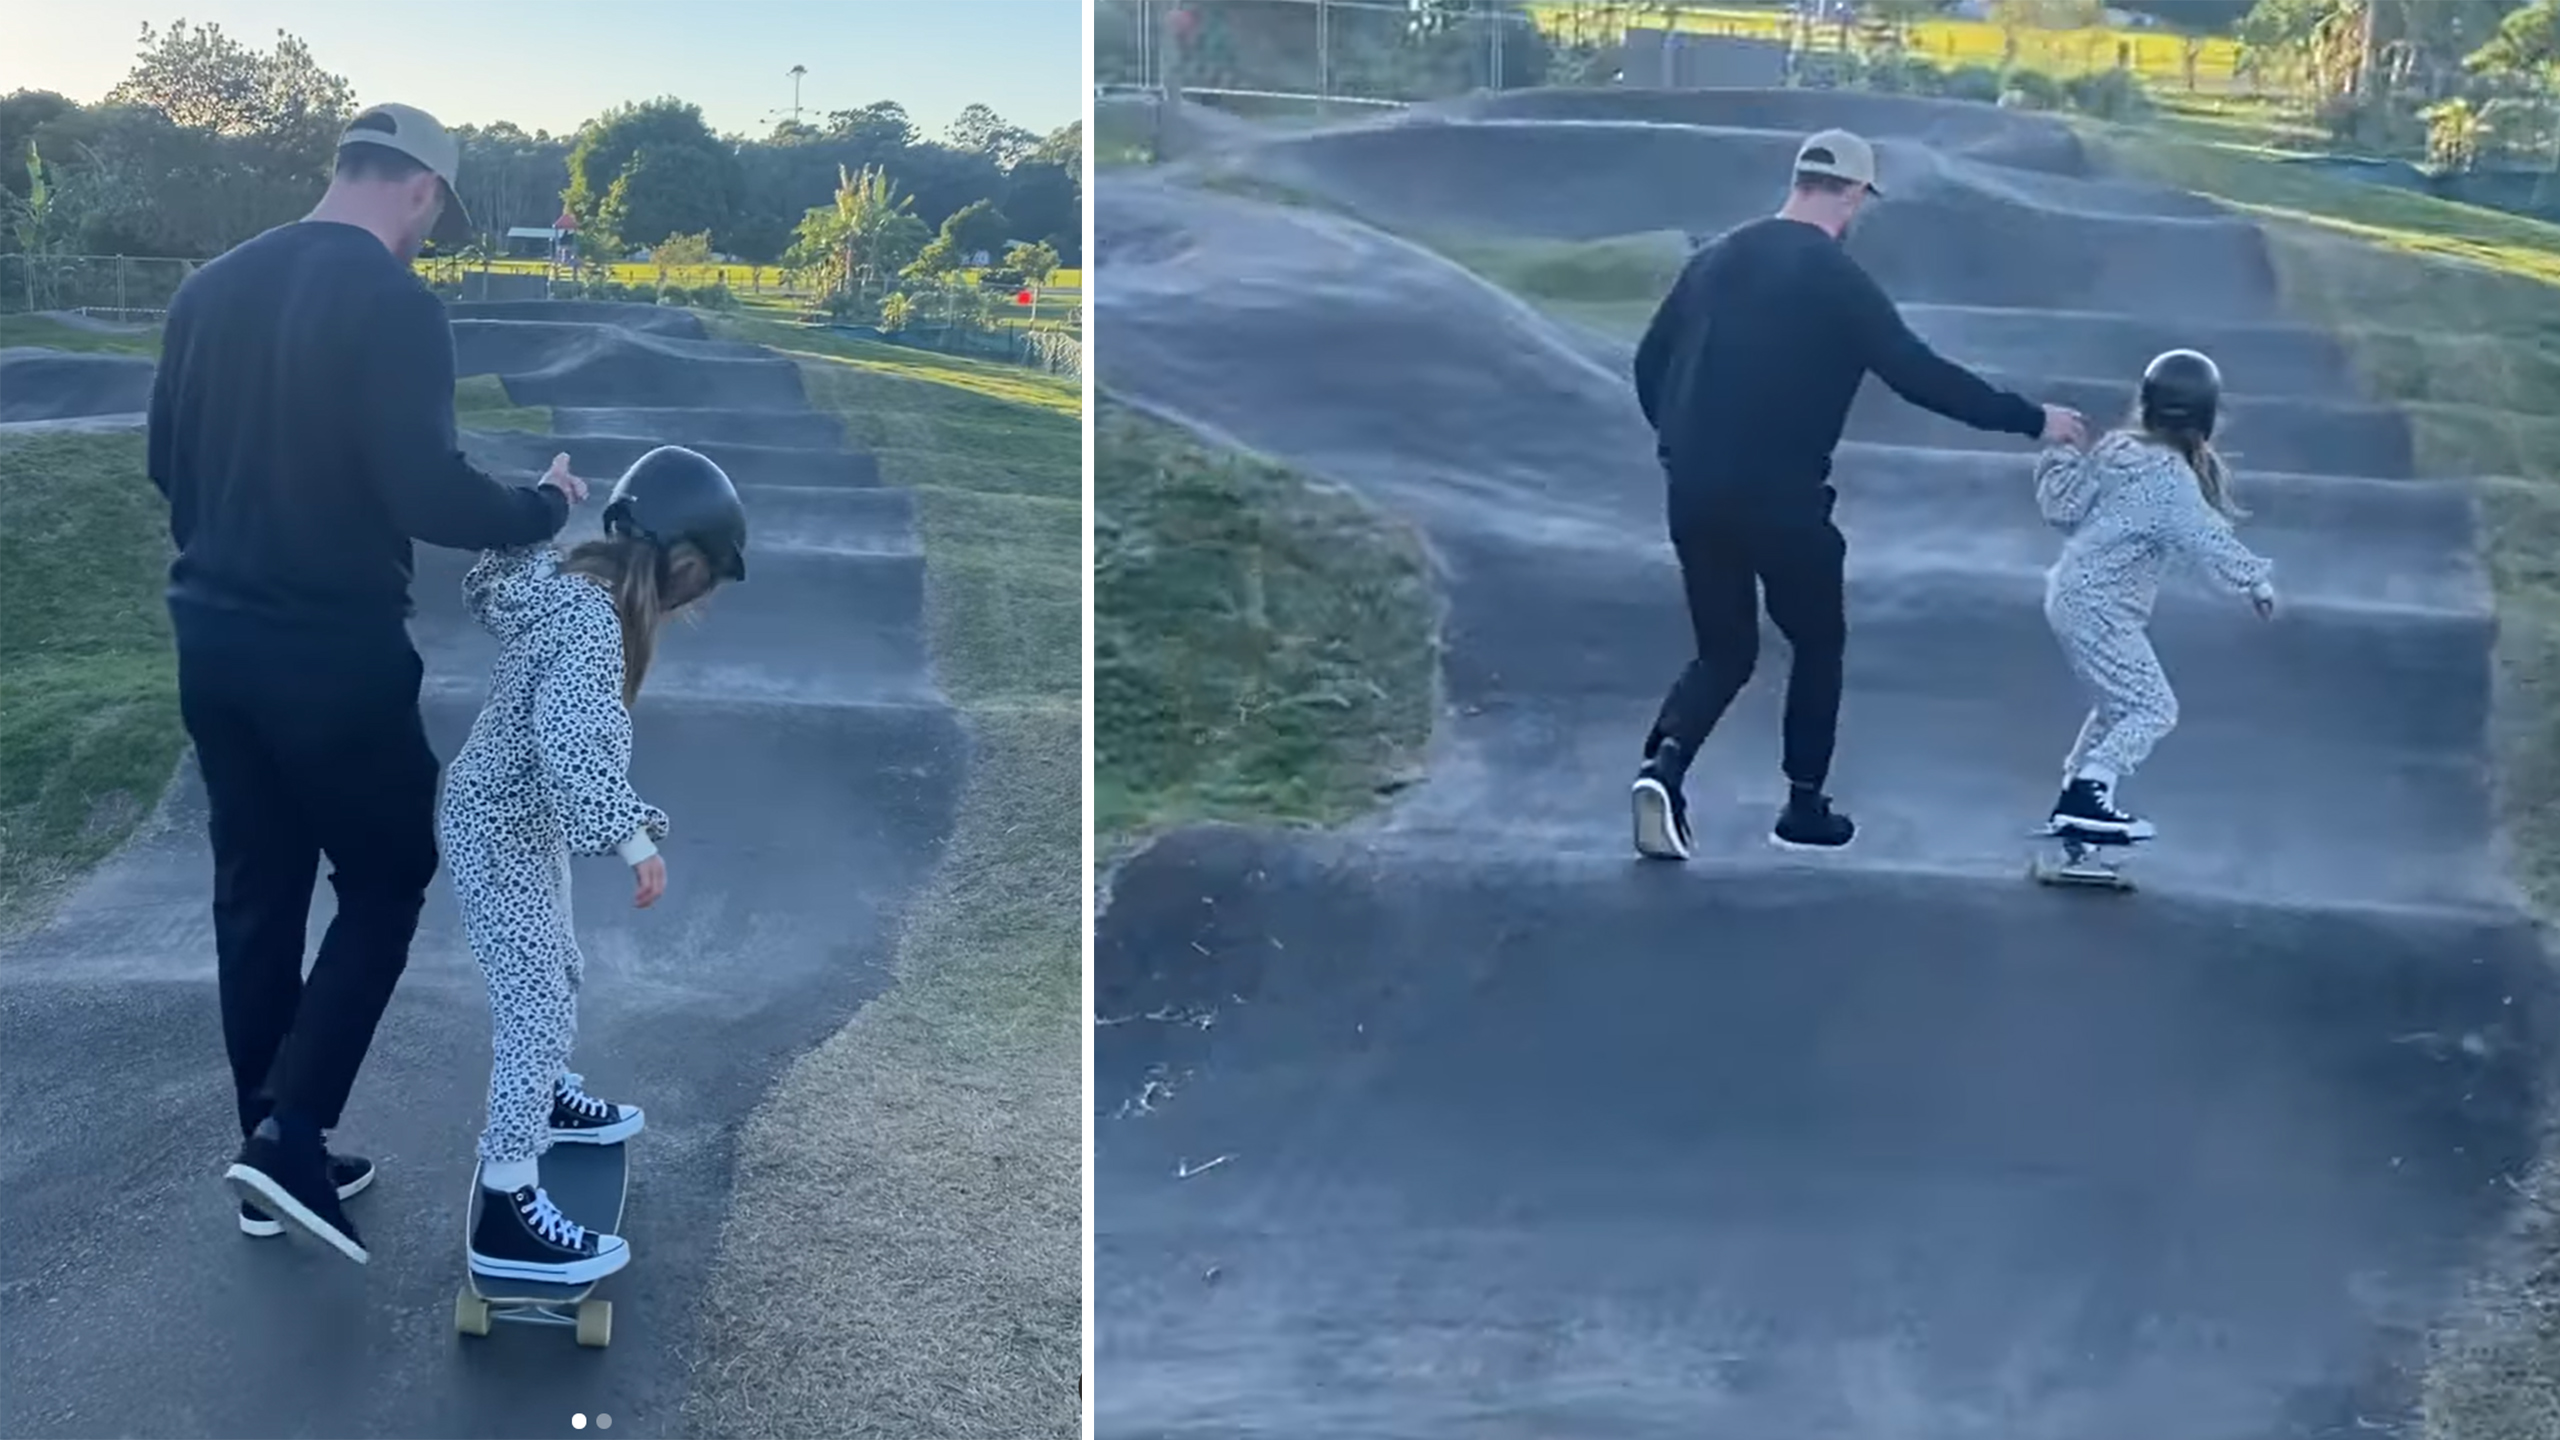 Hemsworth holds daughters hand while skateboarding